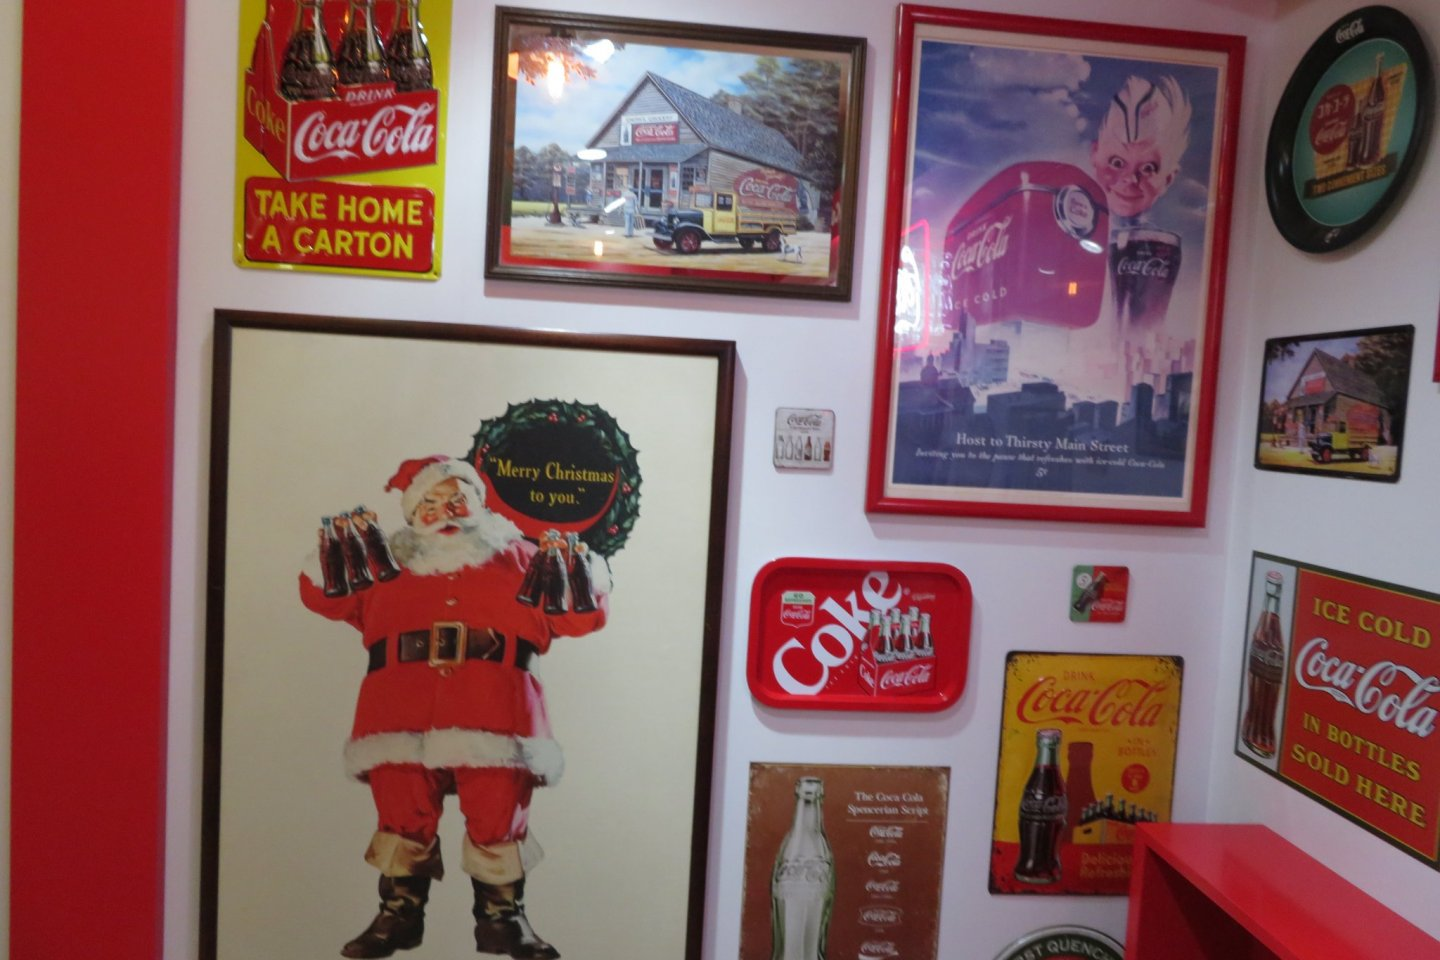 Display of Old Coca Cola Signs